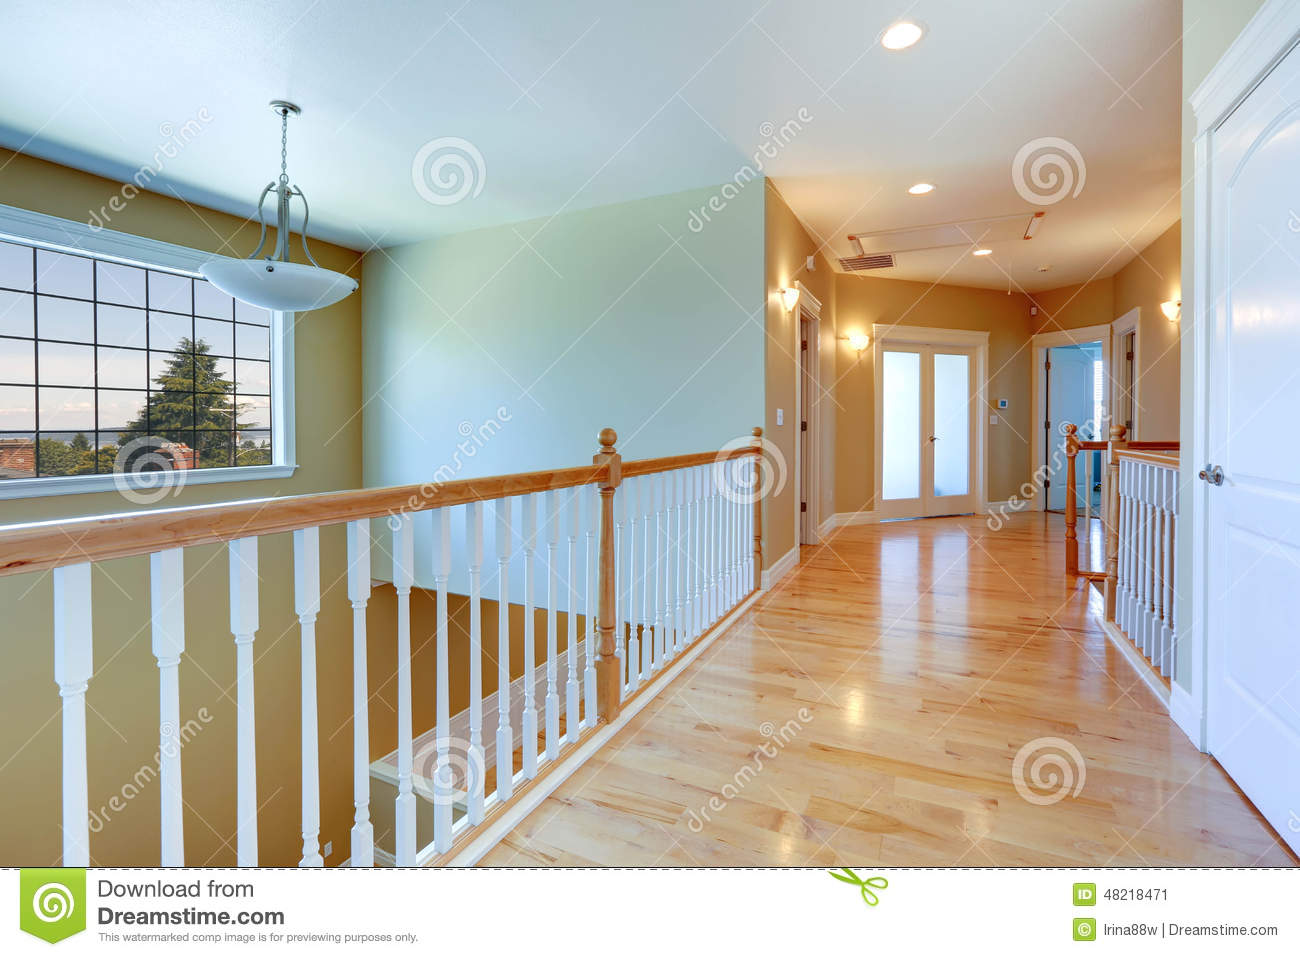 Upstairs hallway with railings stock image image of for Hardwood floors upstairs